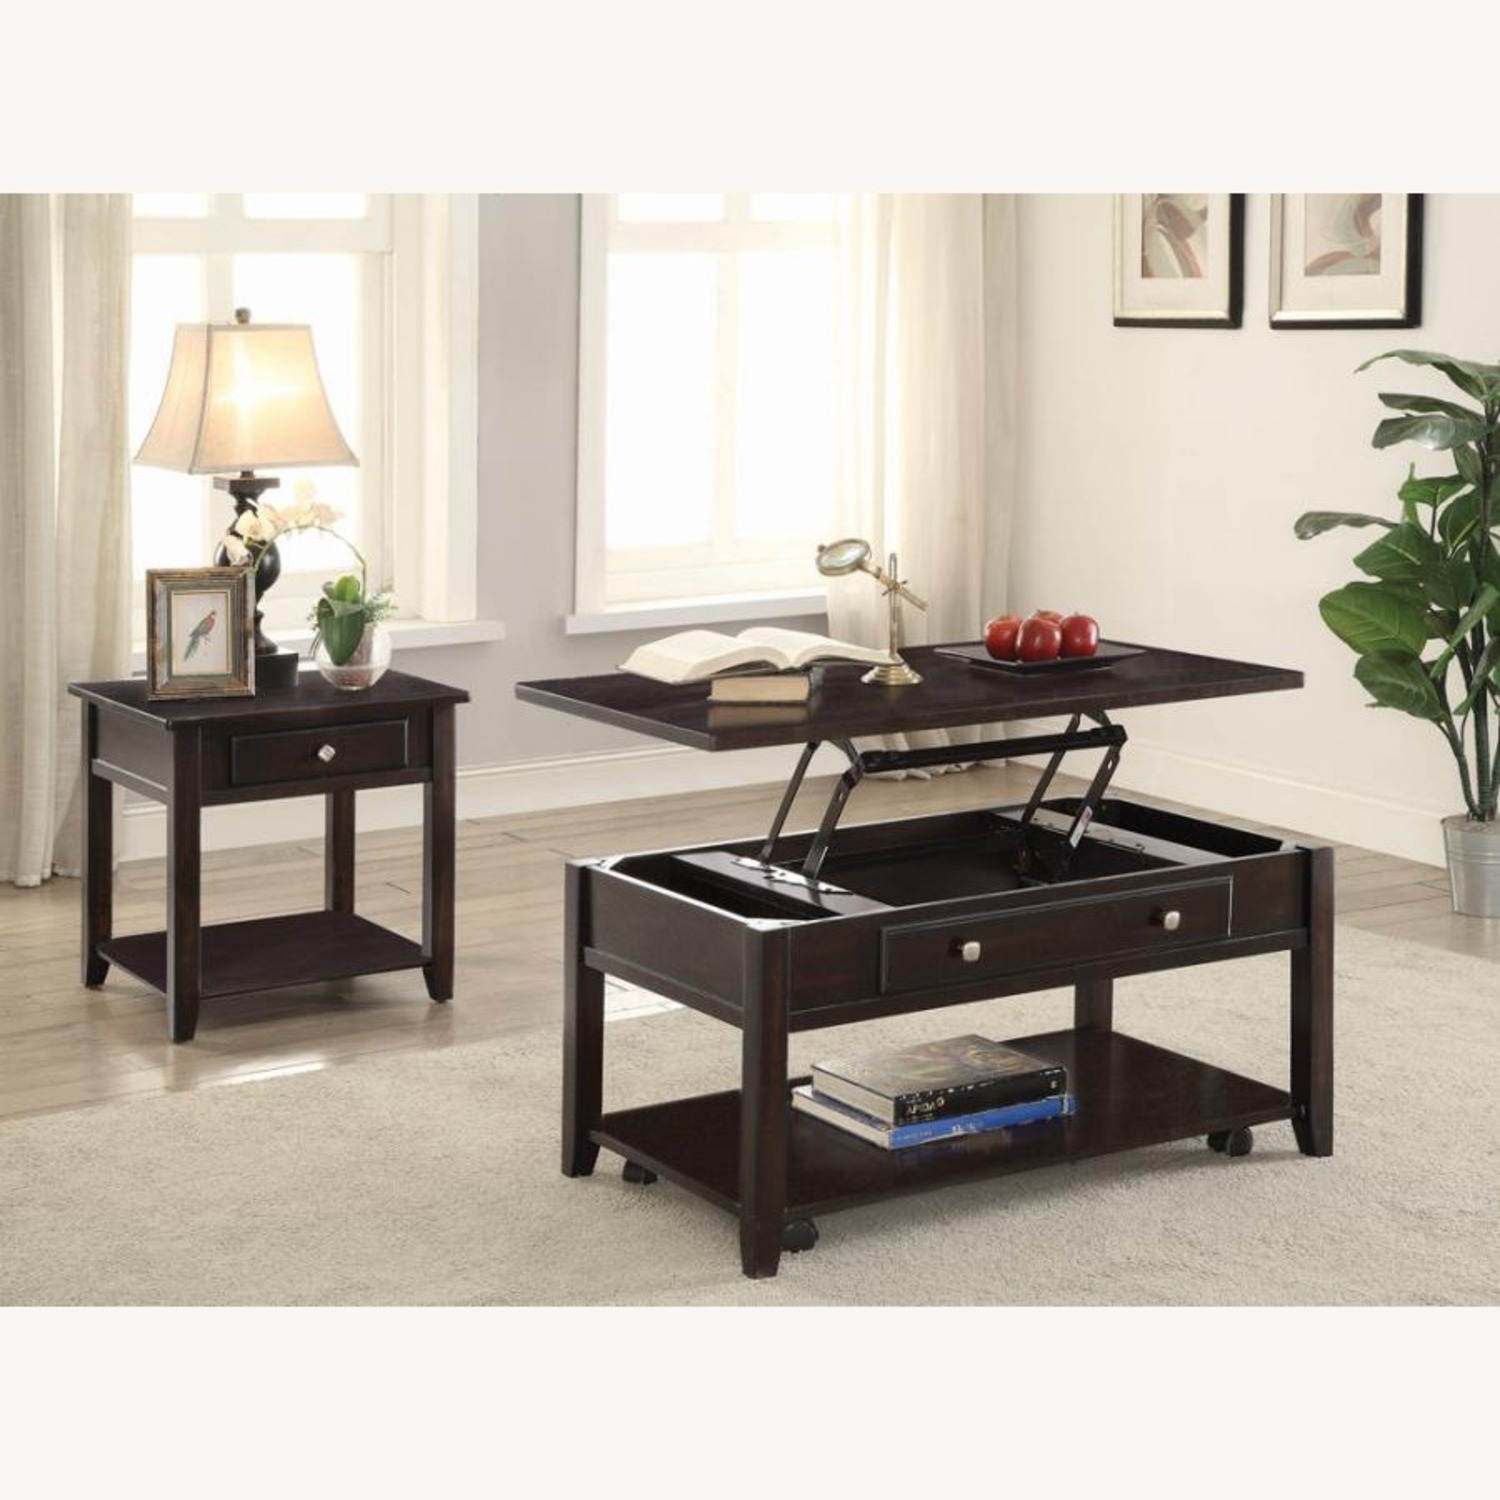 Lift Top Coffee Table In Walnut Finish W/ Shelves - image-4